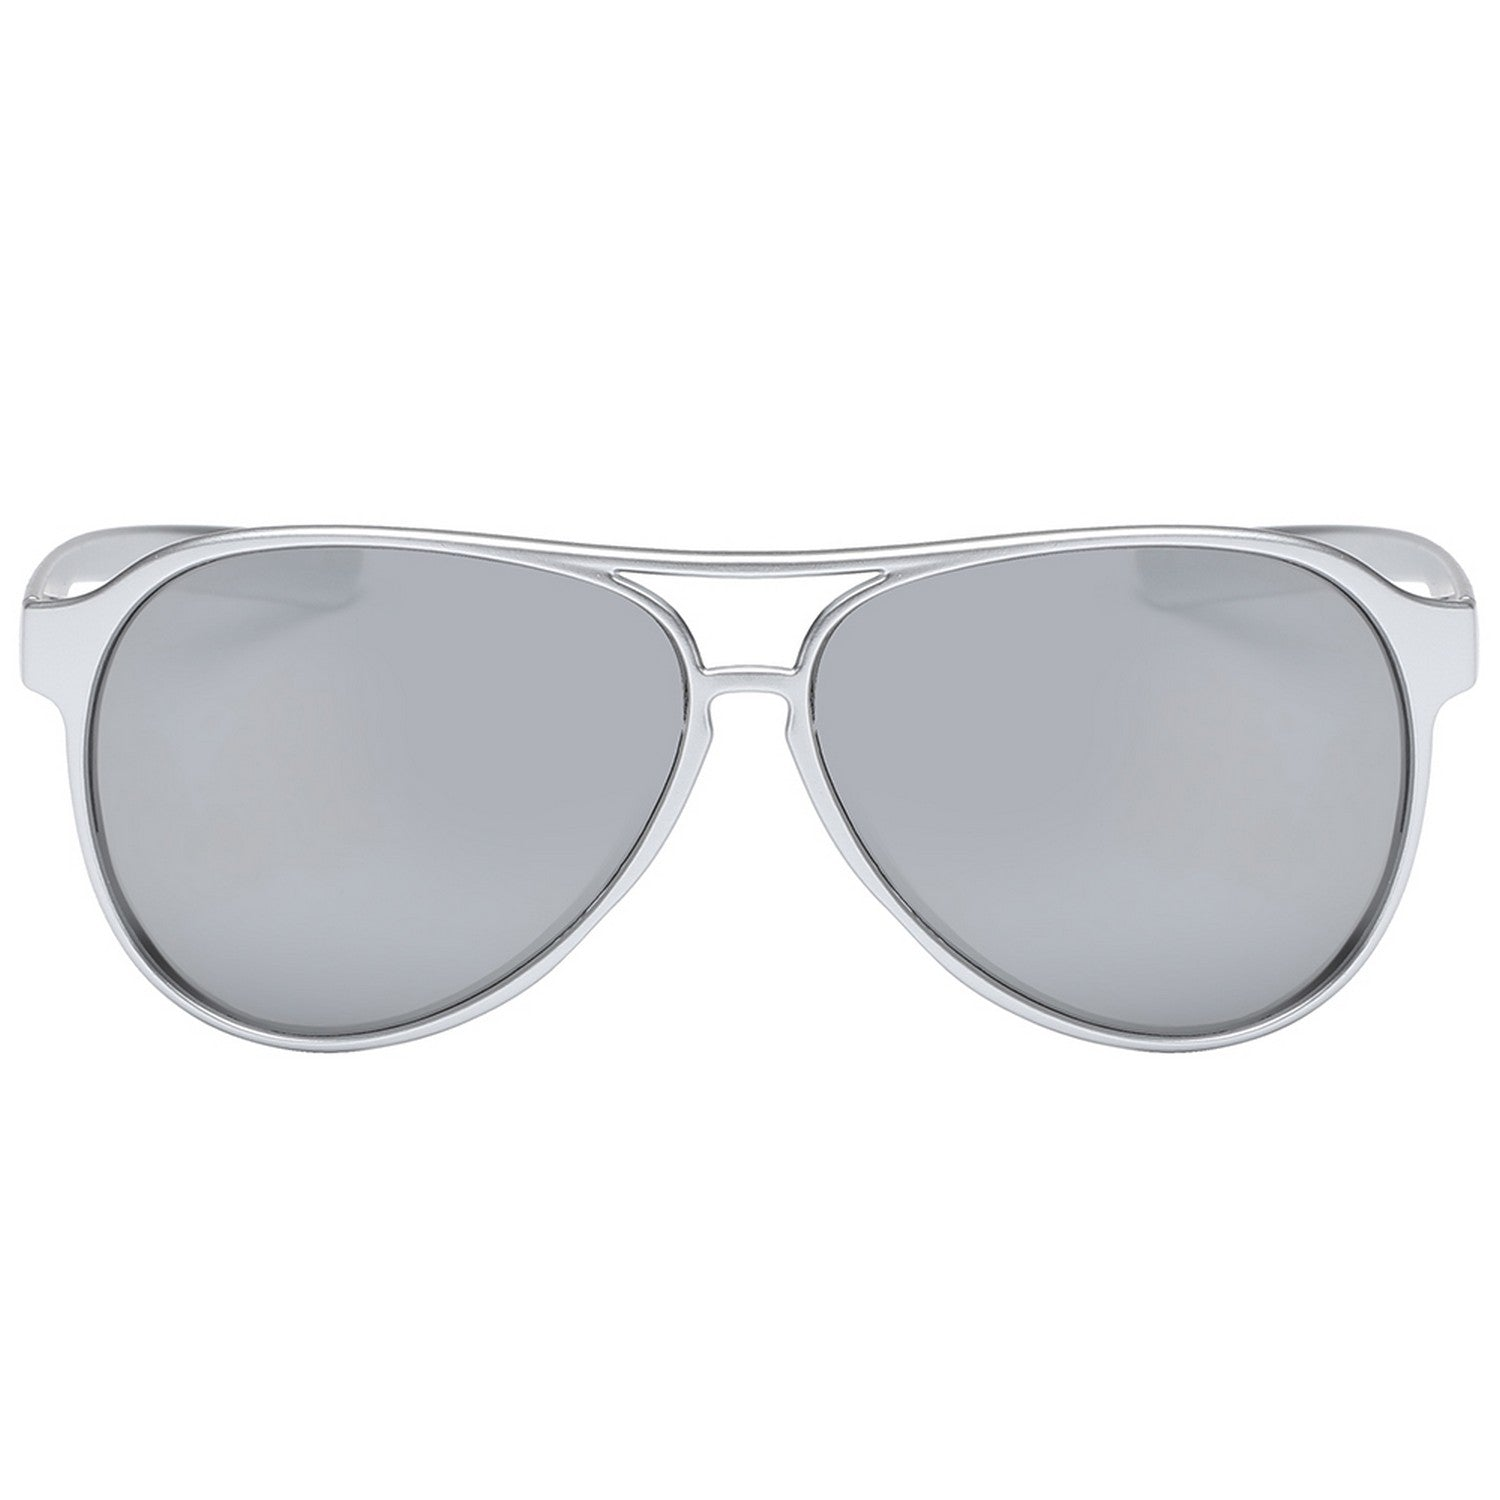 Polarspex Polarized Classic Ultar Lightweight Aviator Pilot Sunglasses with Titanium Silver Frames and Polarized Ice Tech Lenses for Men and Women